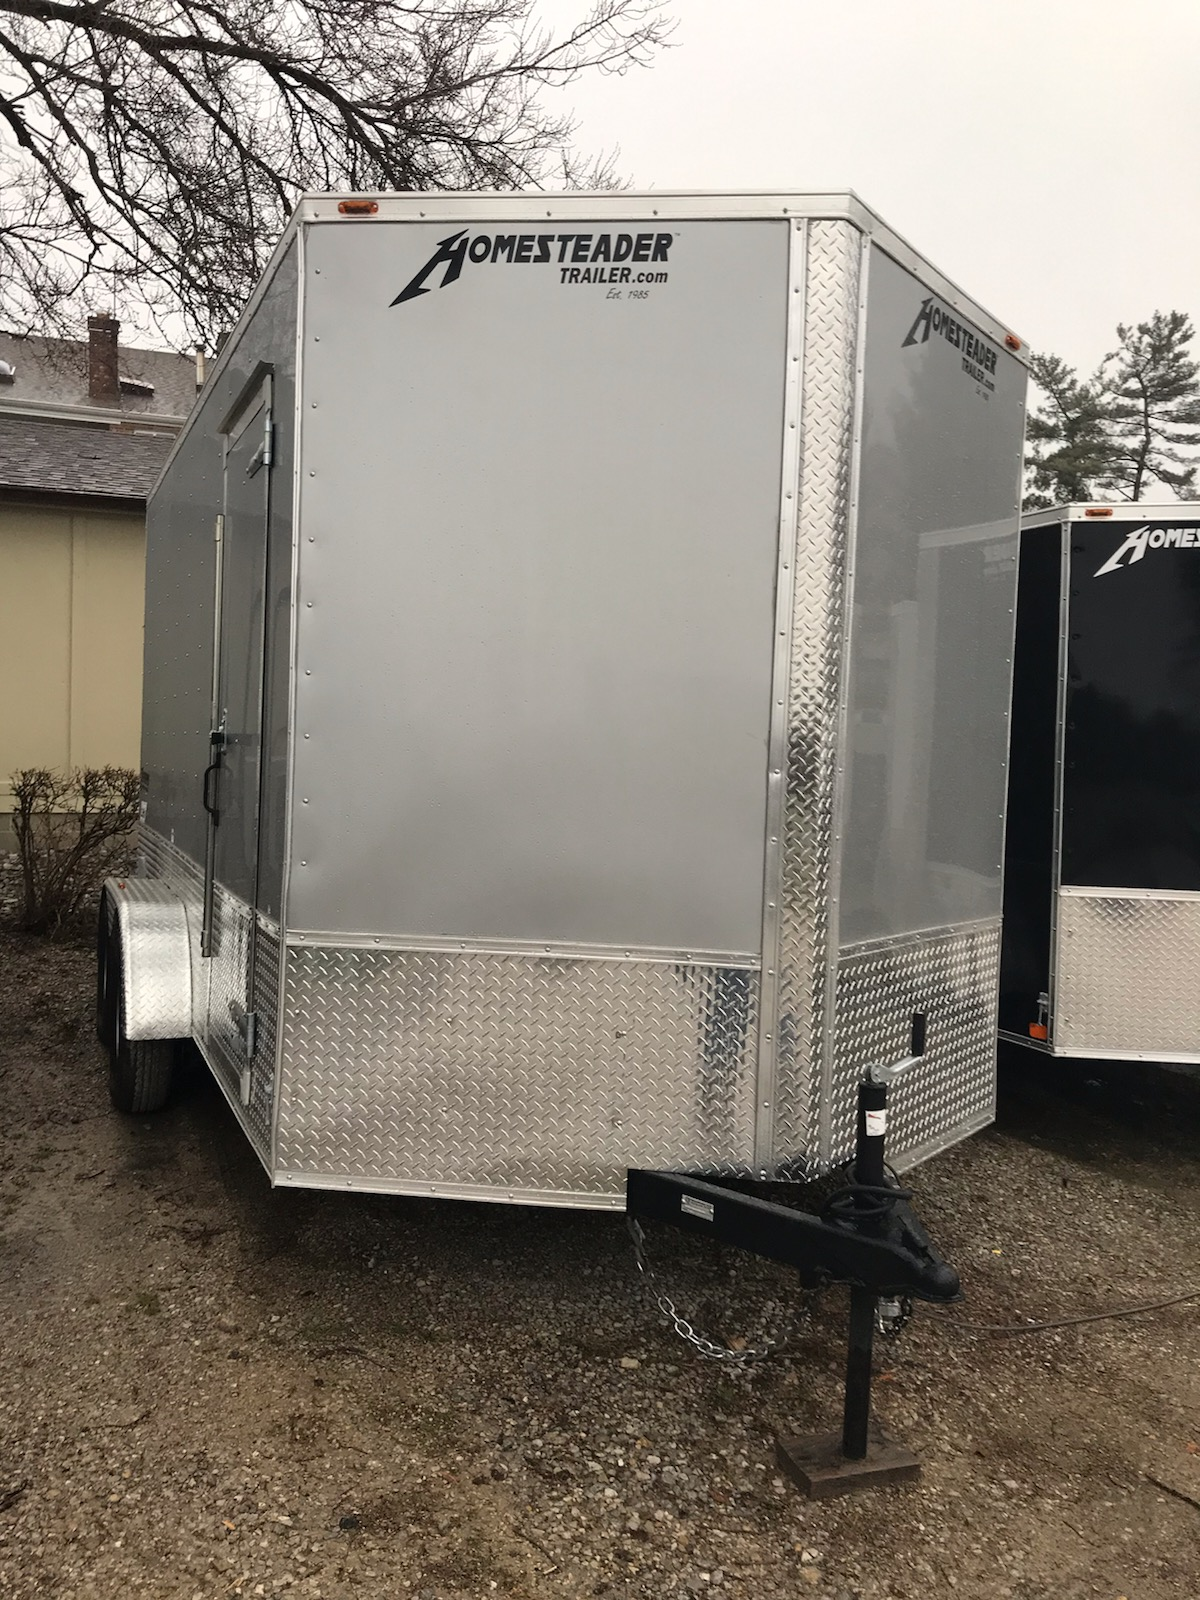 Homesteader 7X14 OHV Intrepid enclosed trailer